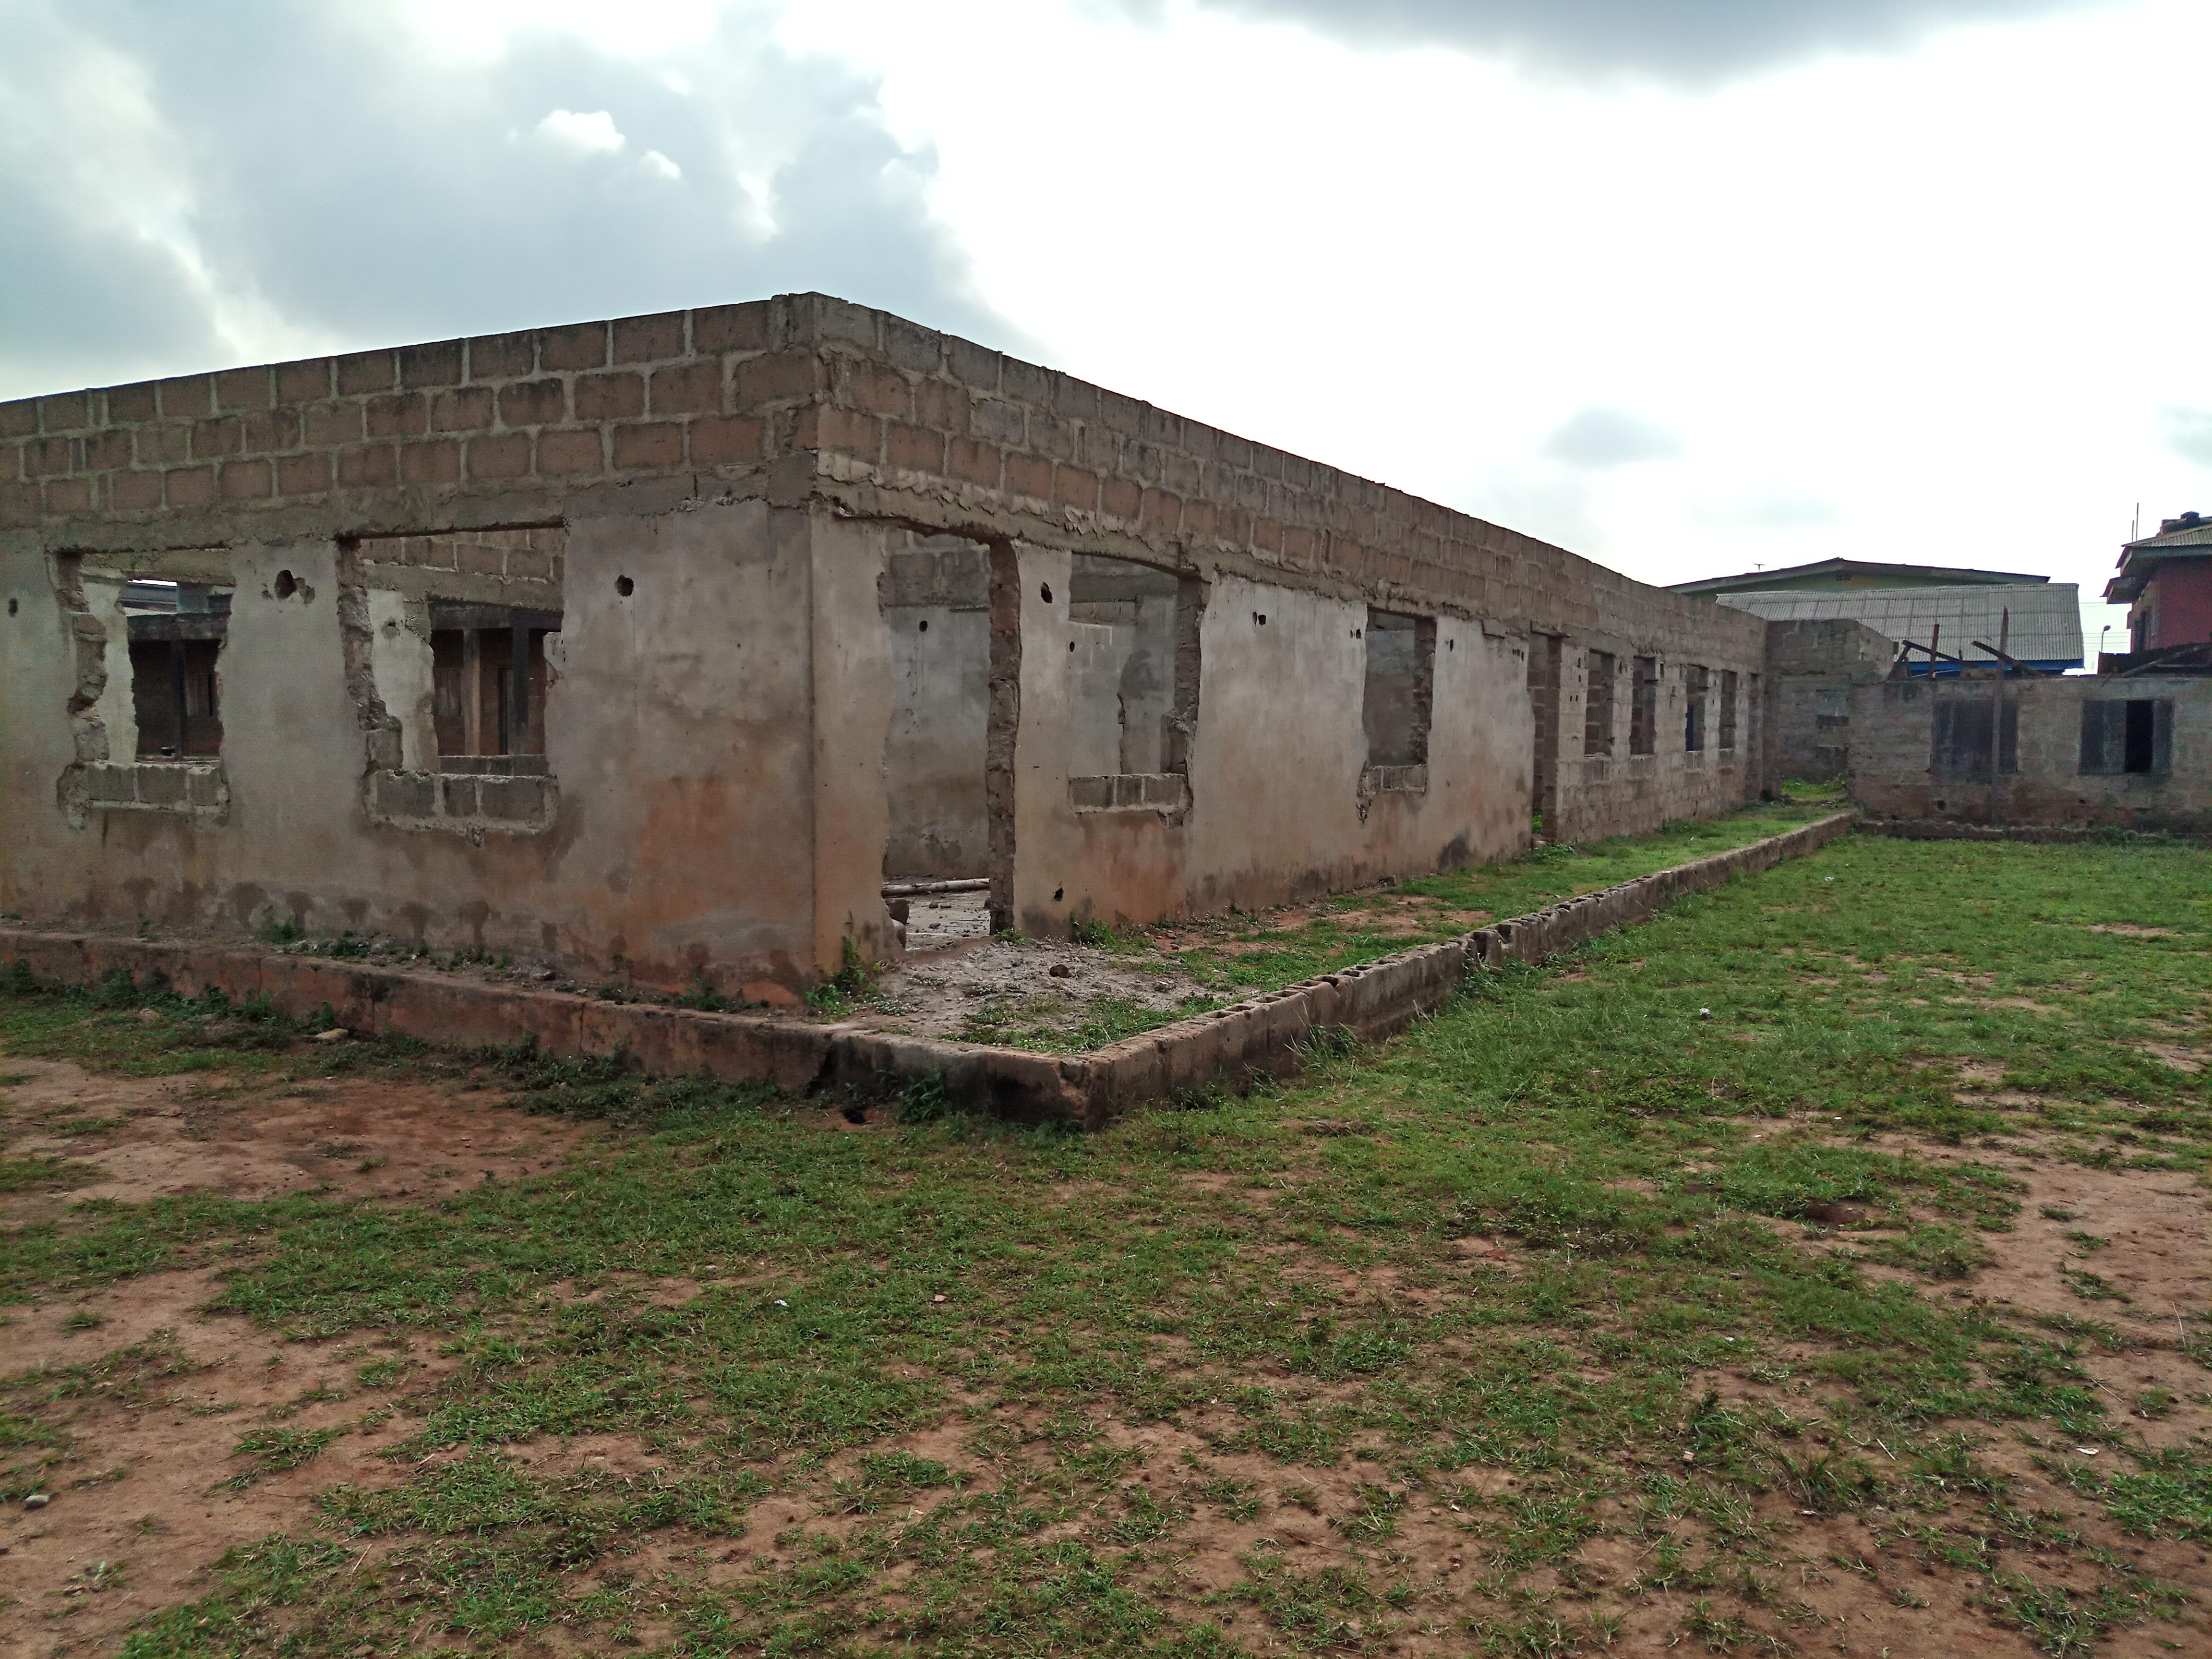 After 26 Million Naira Allocation in 3 Years, St. Paul Primary School in Sagamu Still Begs For Help